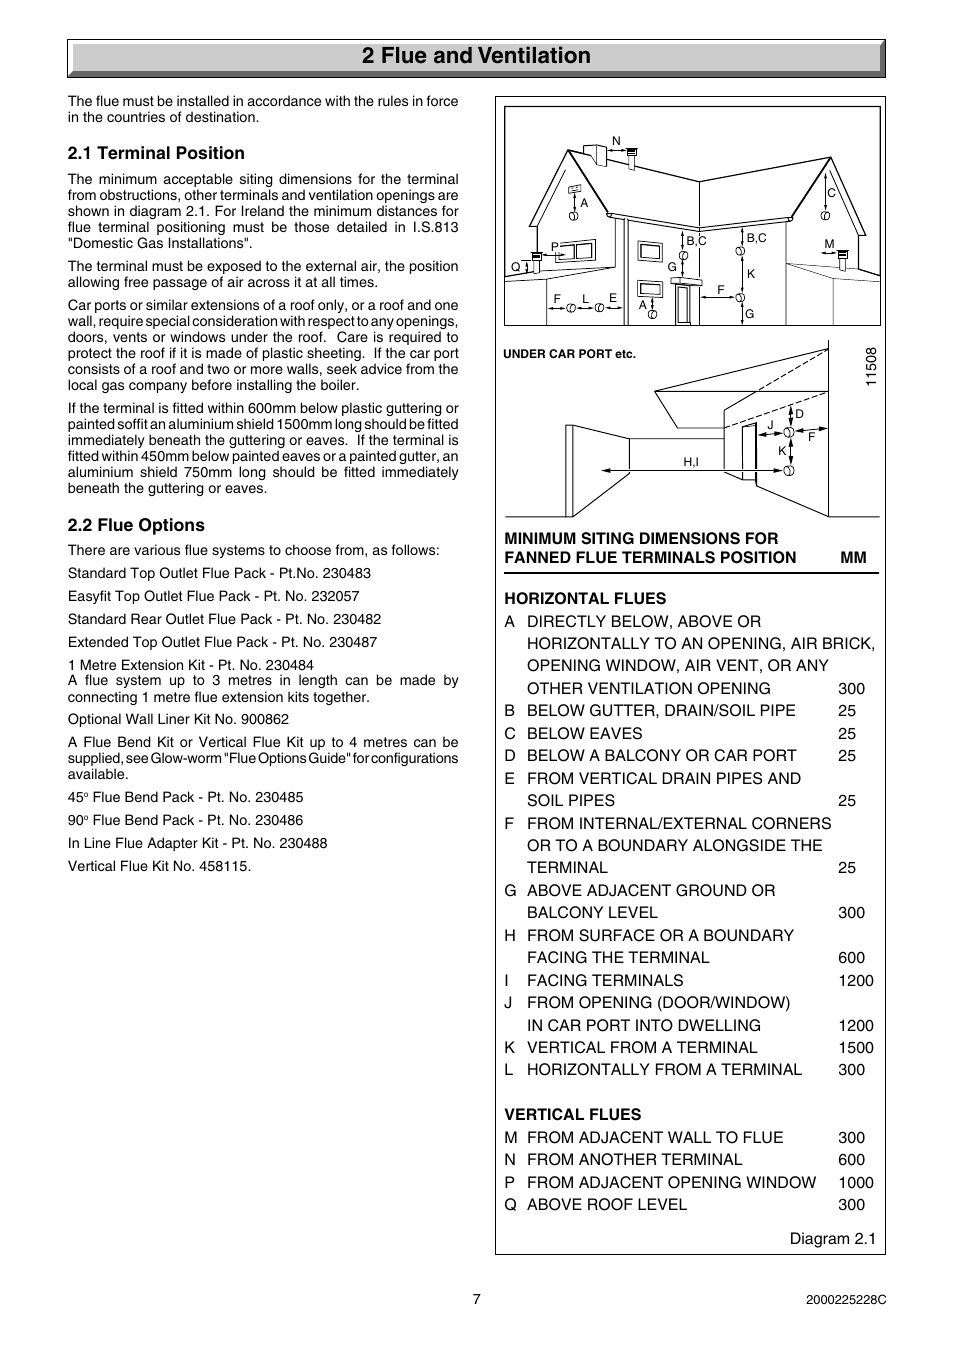 Modern Glow Worm Manuals Motif - Everything You Need to Know About ...